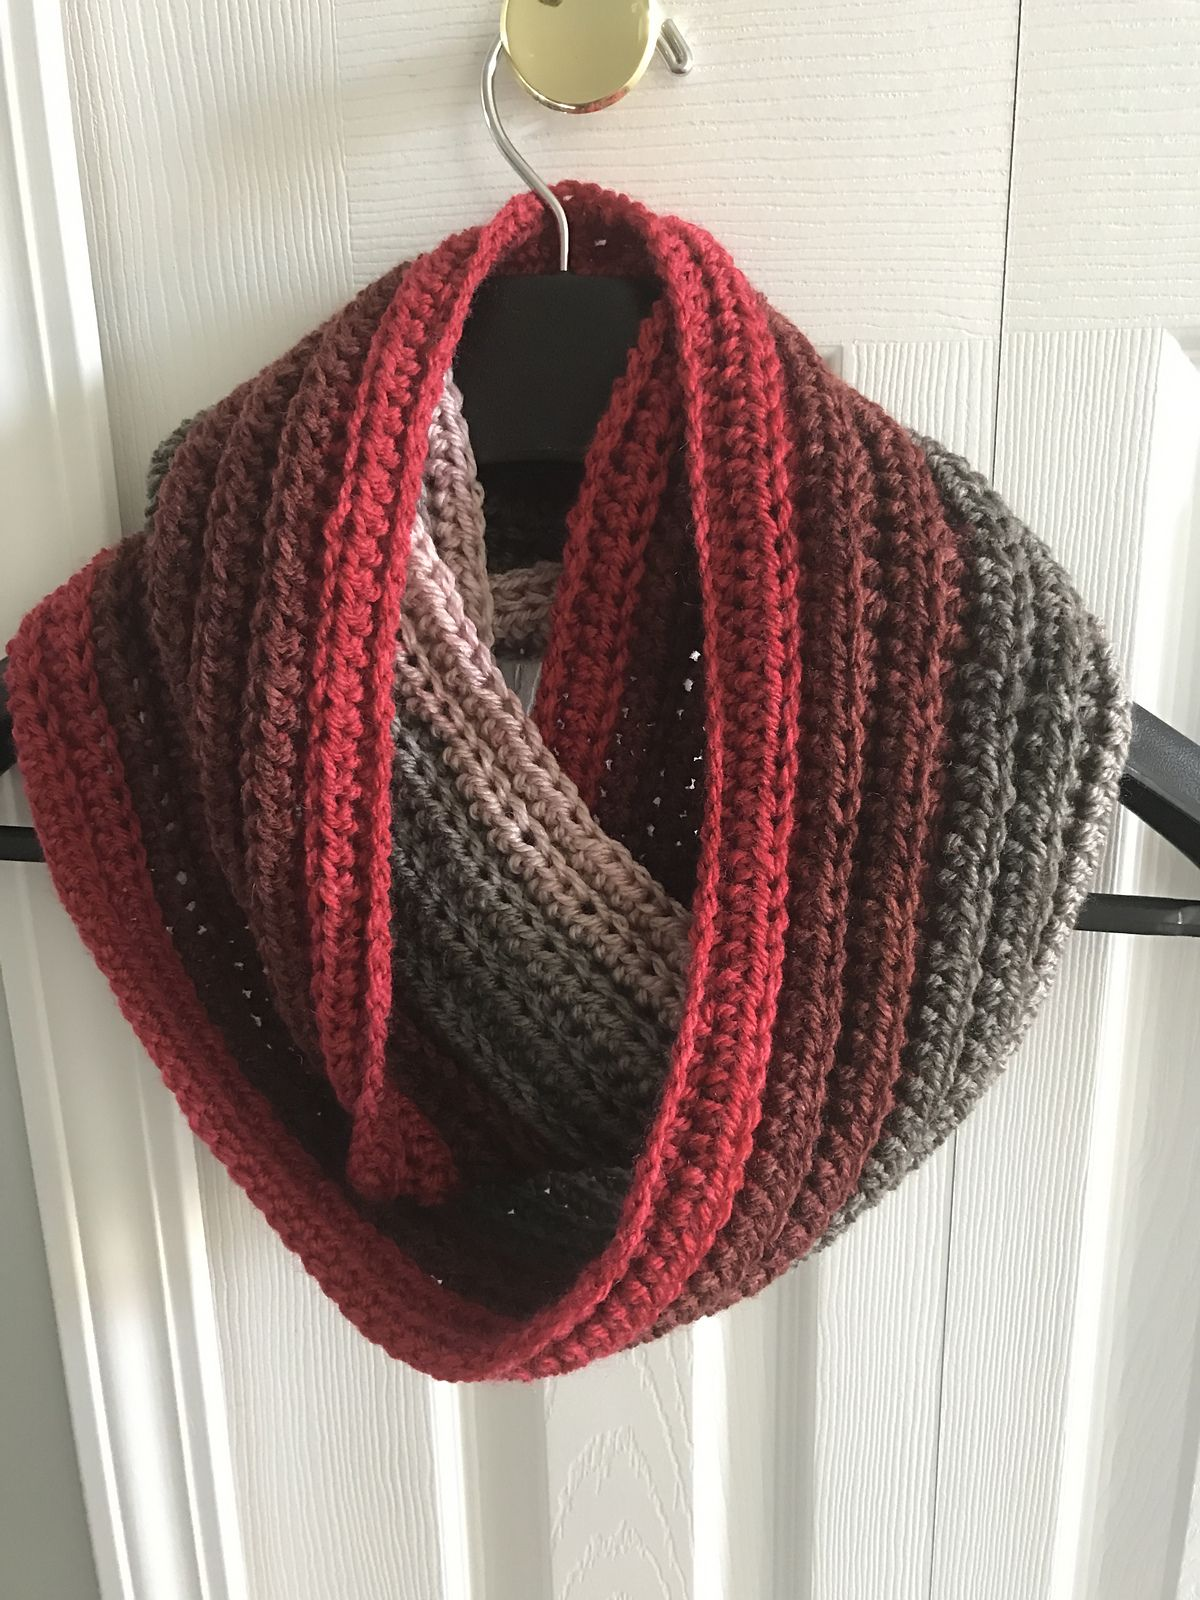 Easy Crochet Cowl Pattern Awesome Design